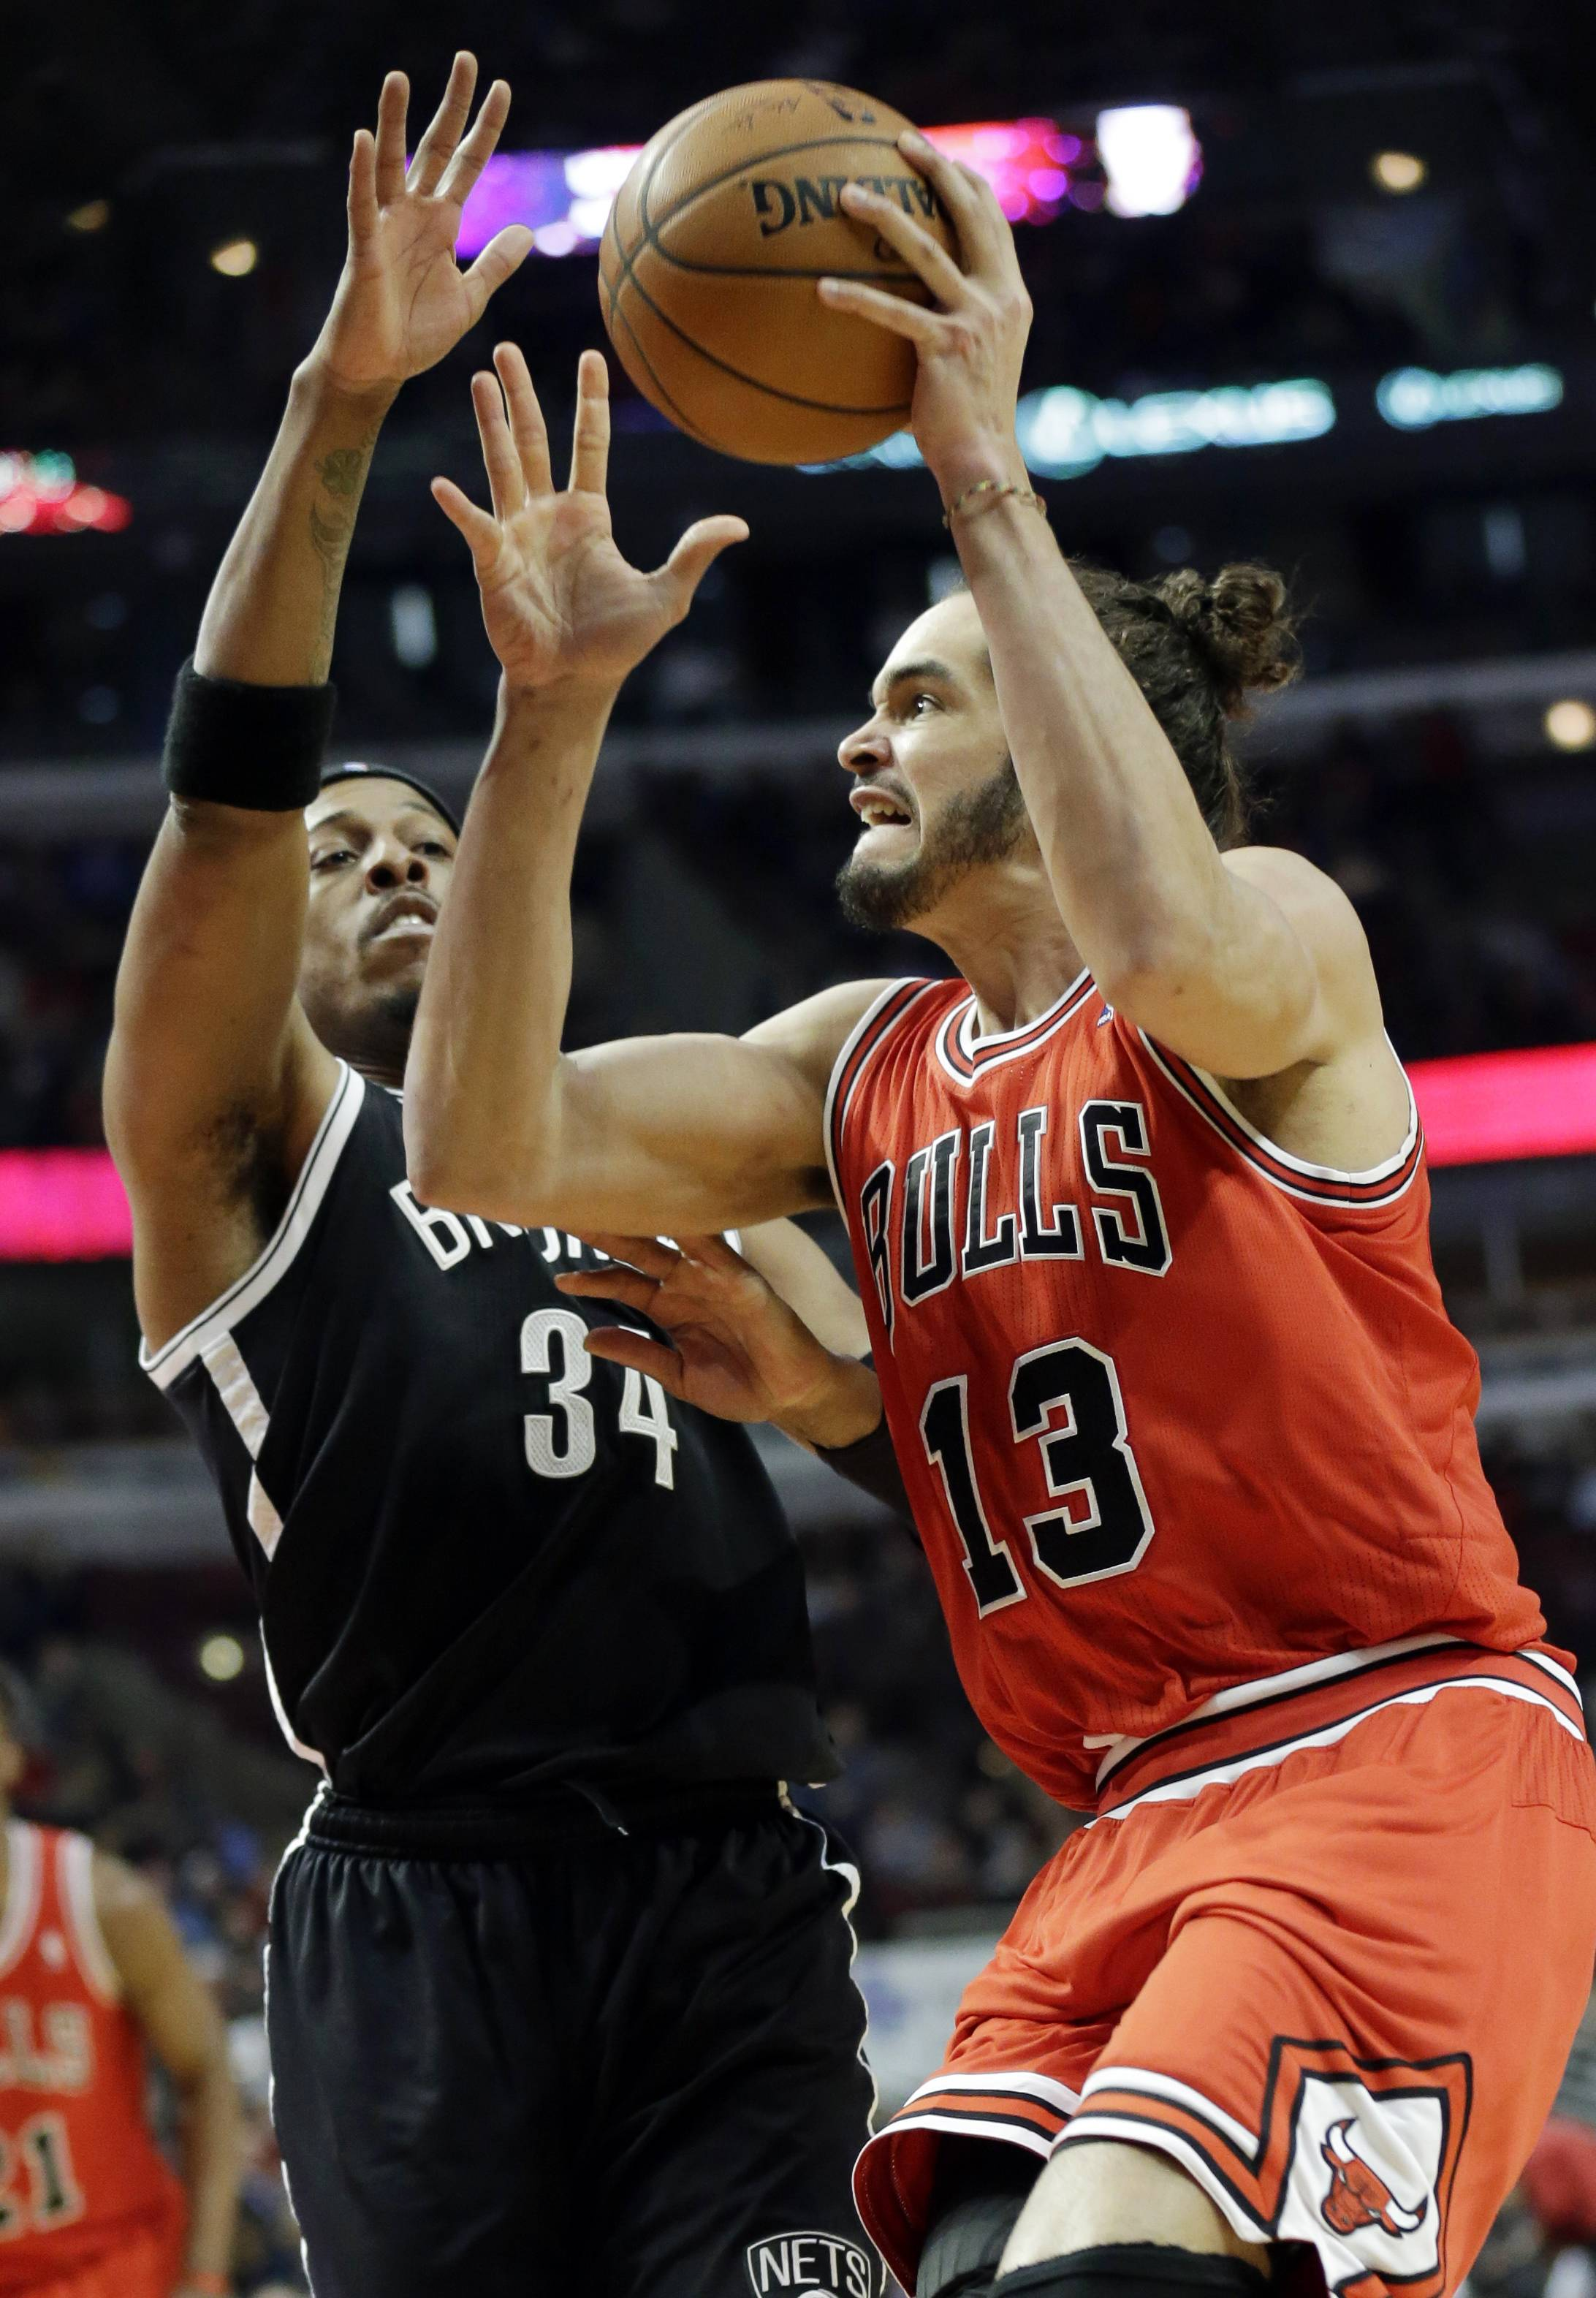 Bulls center Joakim Noah, the team's only all-star, shoots against the Nets' Paul Pierce during the second half Thursday night at the United Center. The Bulls go into the all-star break at 27-25.